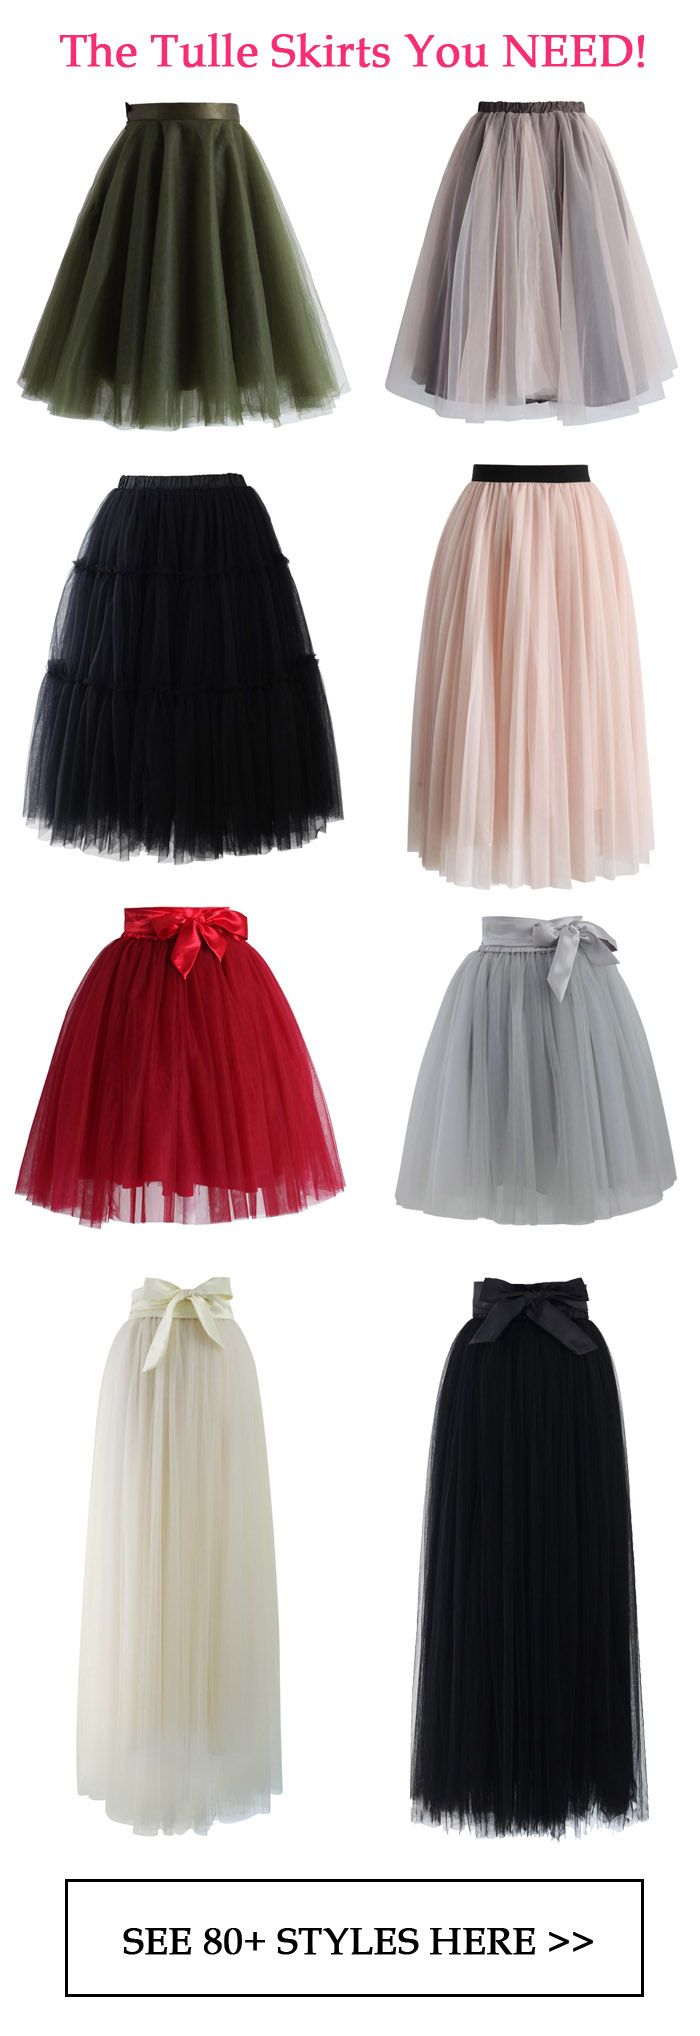 The tulle skirts you need! Our tulle skirt features a satin waistline, a flattering flit-and-flare cut and 5 layers of delicate, gracefully flowing mesh!